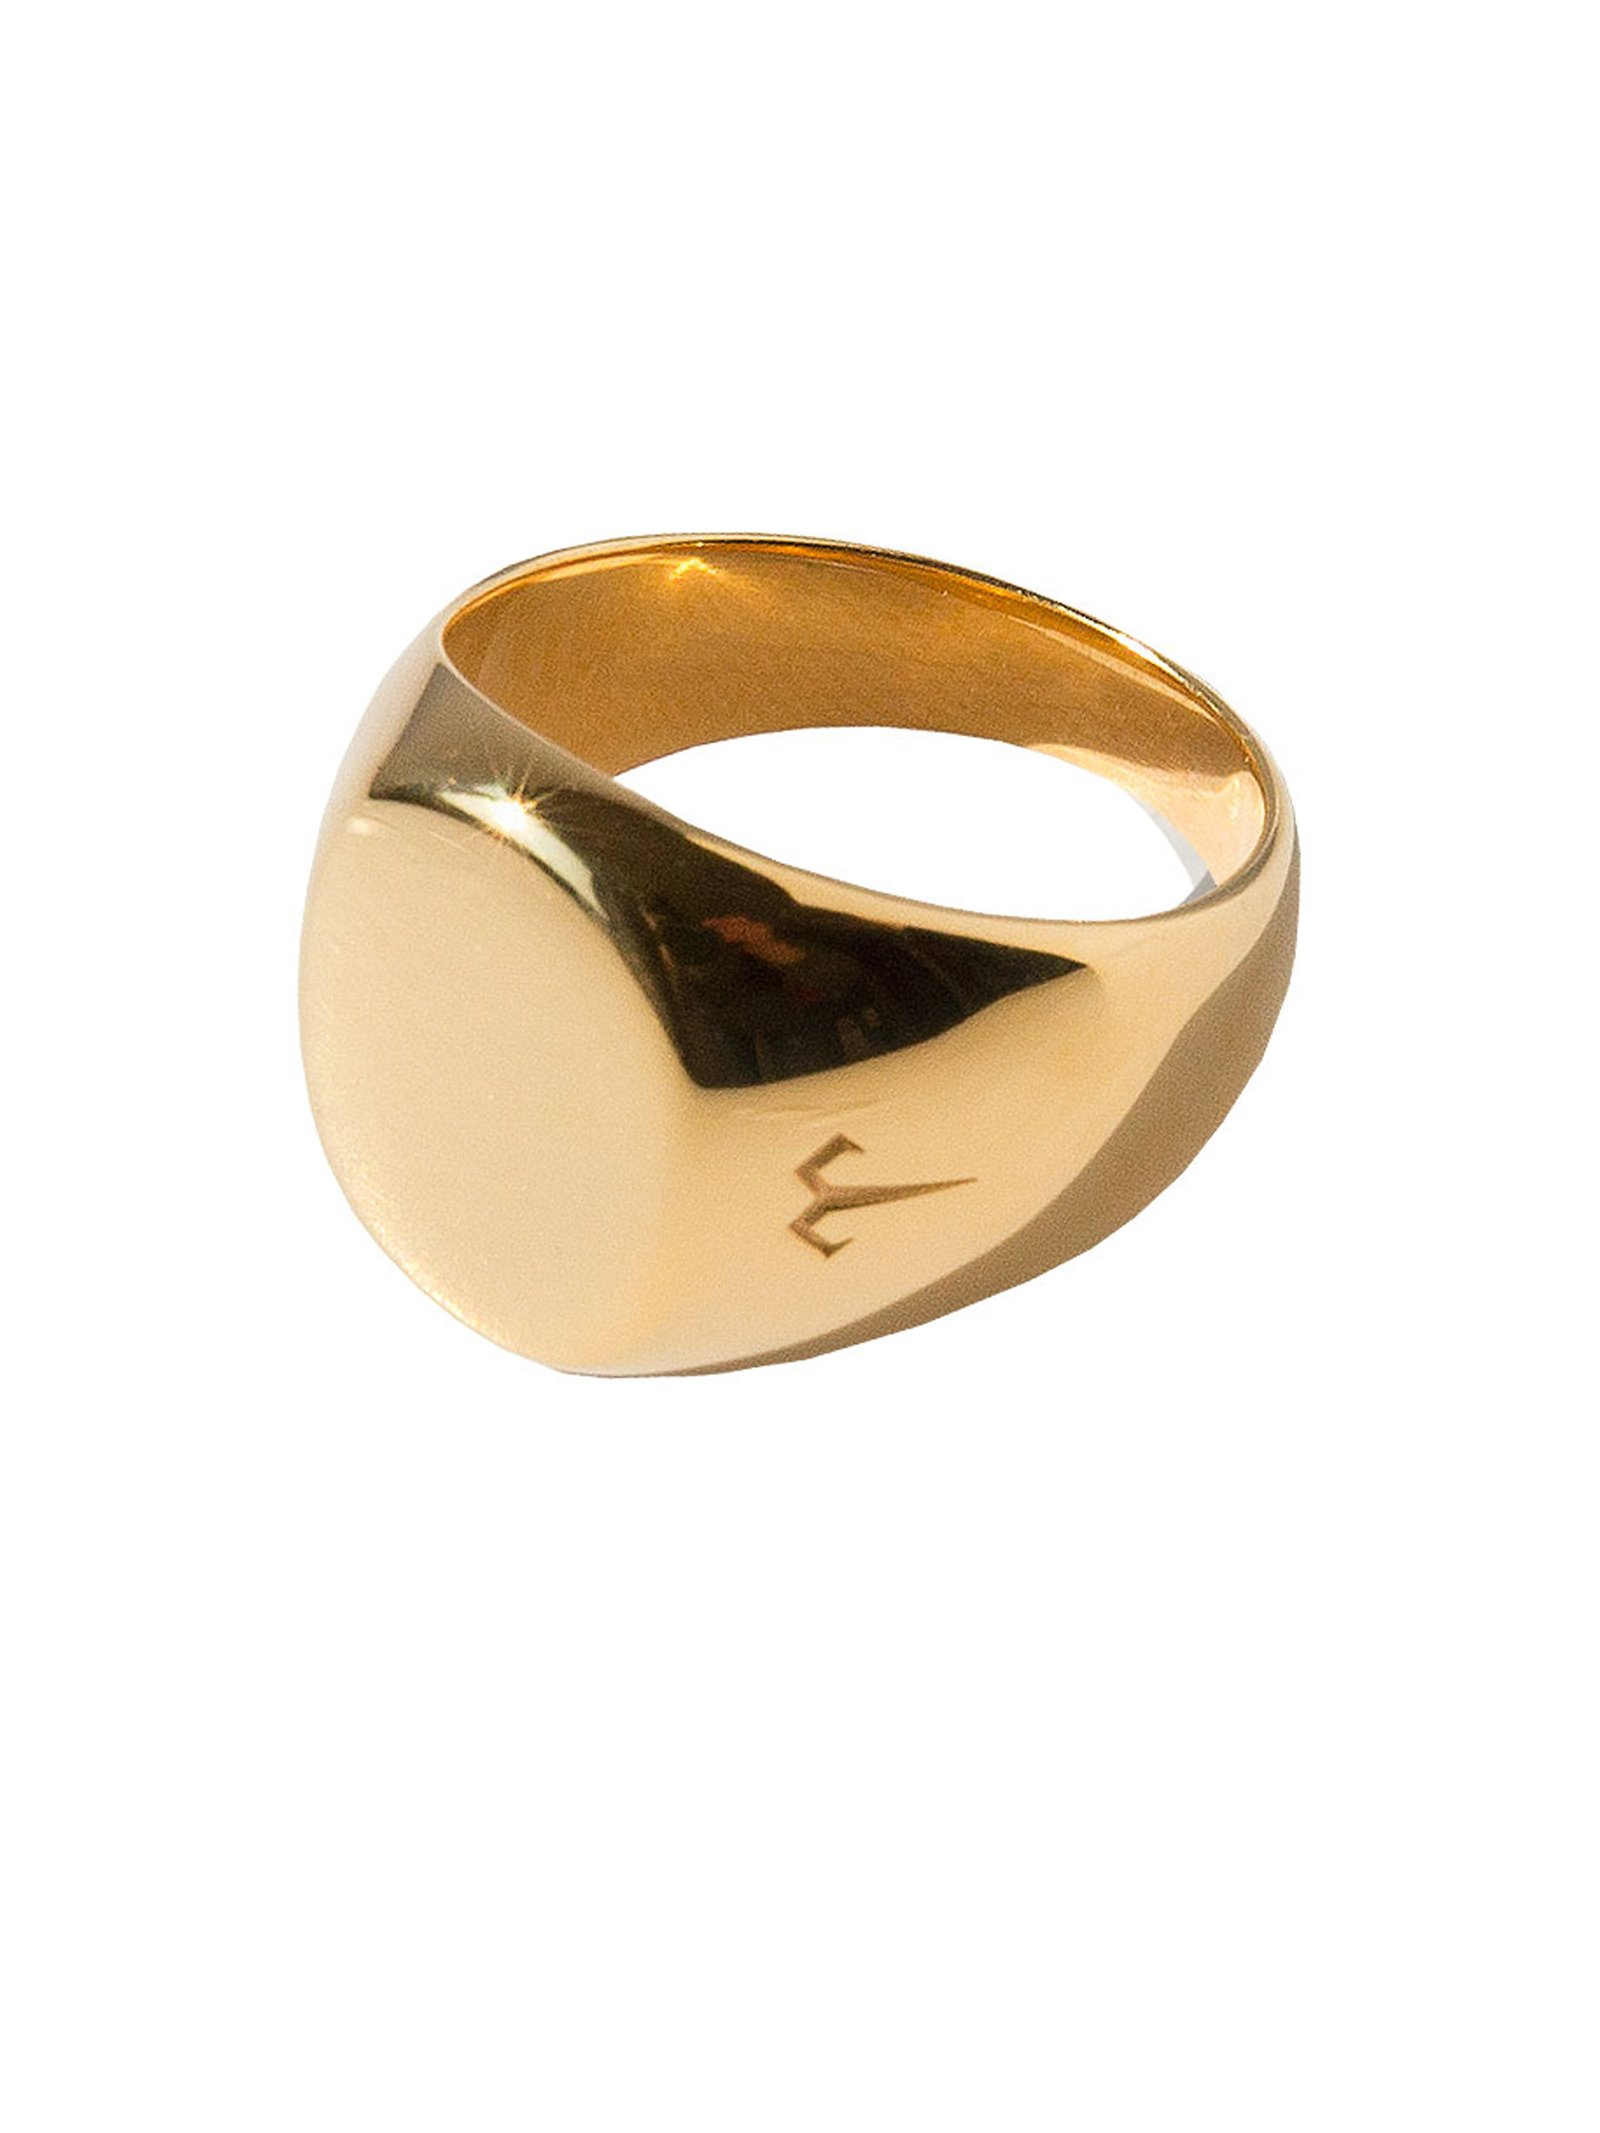 Ternary London TERNARY LONDON MEDIUM SIZE SIGNET RING GOLD PLATED